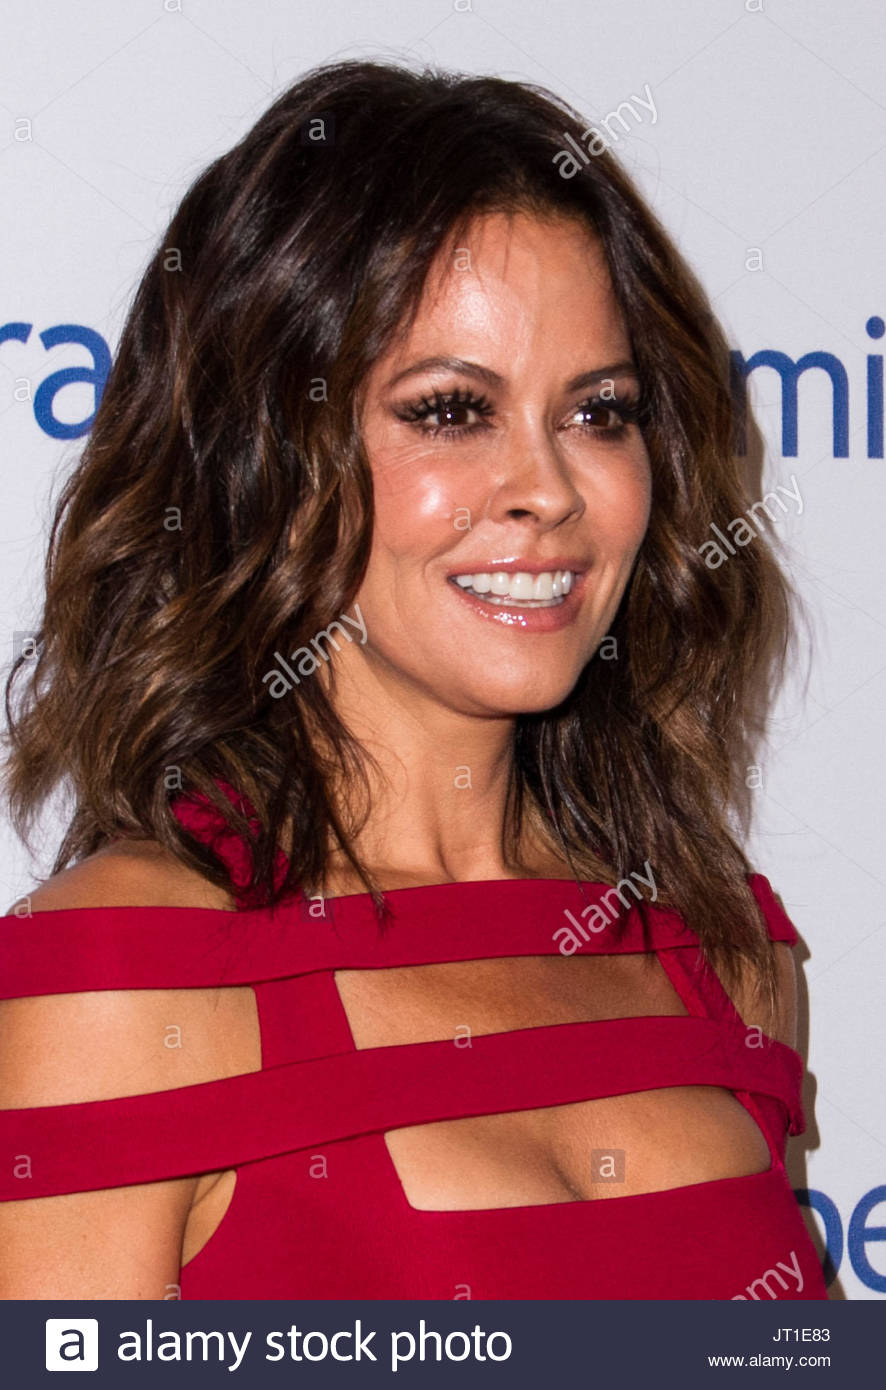 David charvet hairstyles for 2017 celebrity hairstyles by - Brooke Burke Charvet Operation Smile S 2015 Smile Gala Red Carpet Arrivals Oct 02